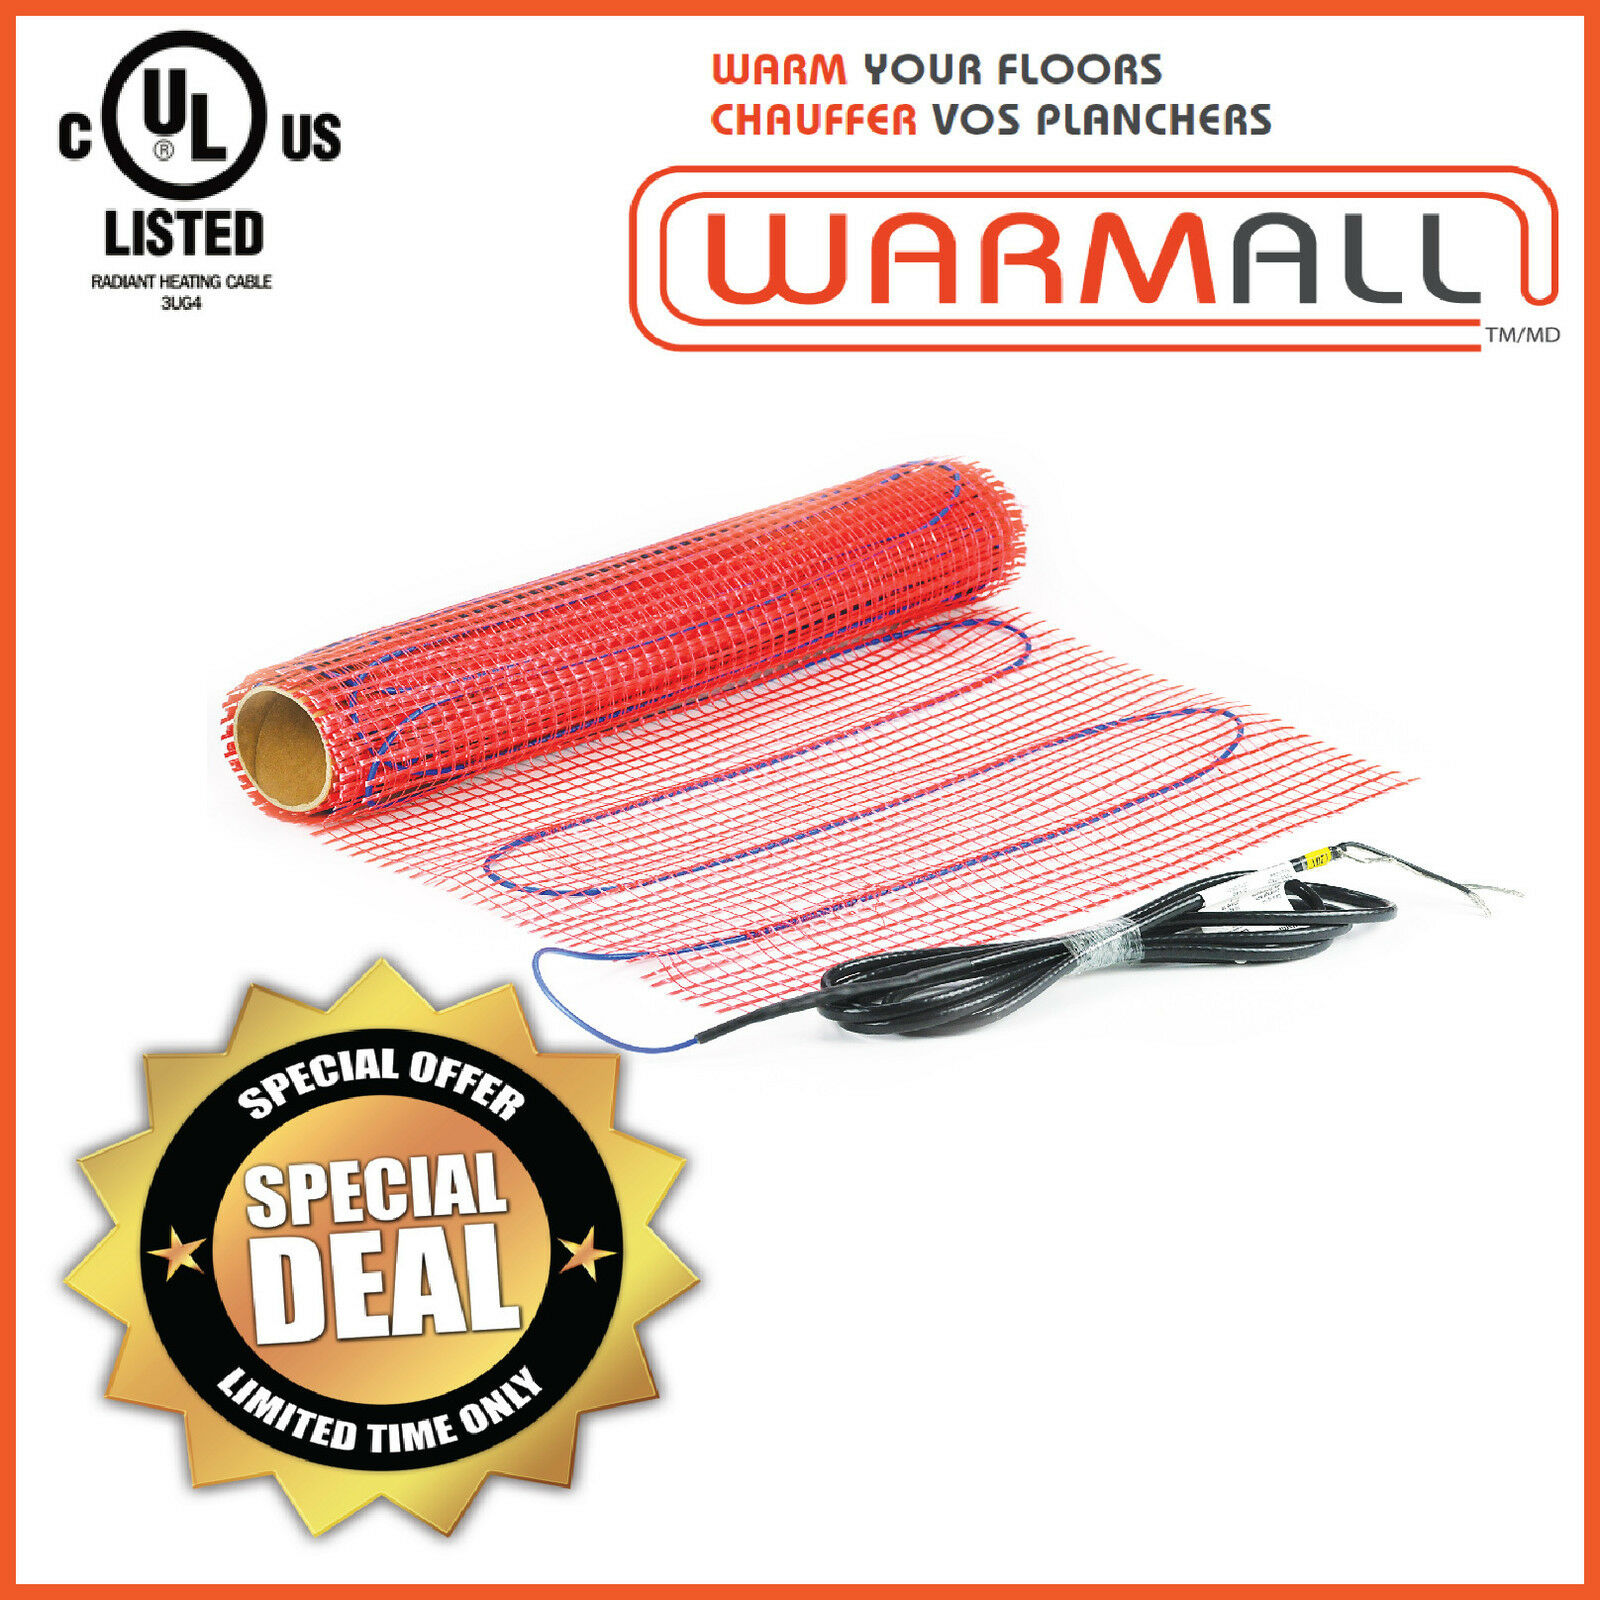 Heat mat for tile floor image collections tile flooring design ideas tile floor heat mats choice image tile flooring design ideas tile floor heating mat gallery tile dailygadgetfo Images